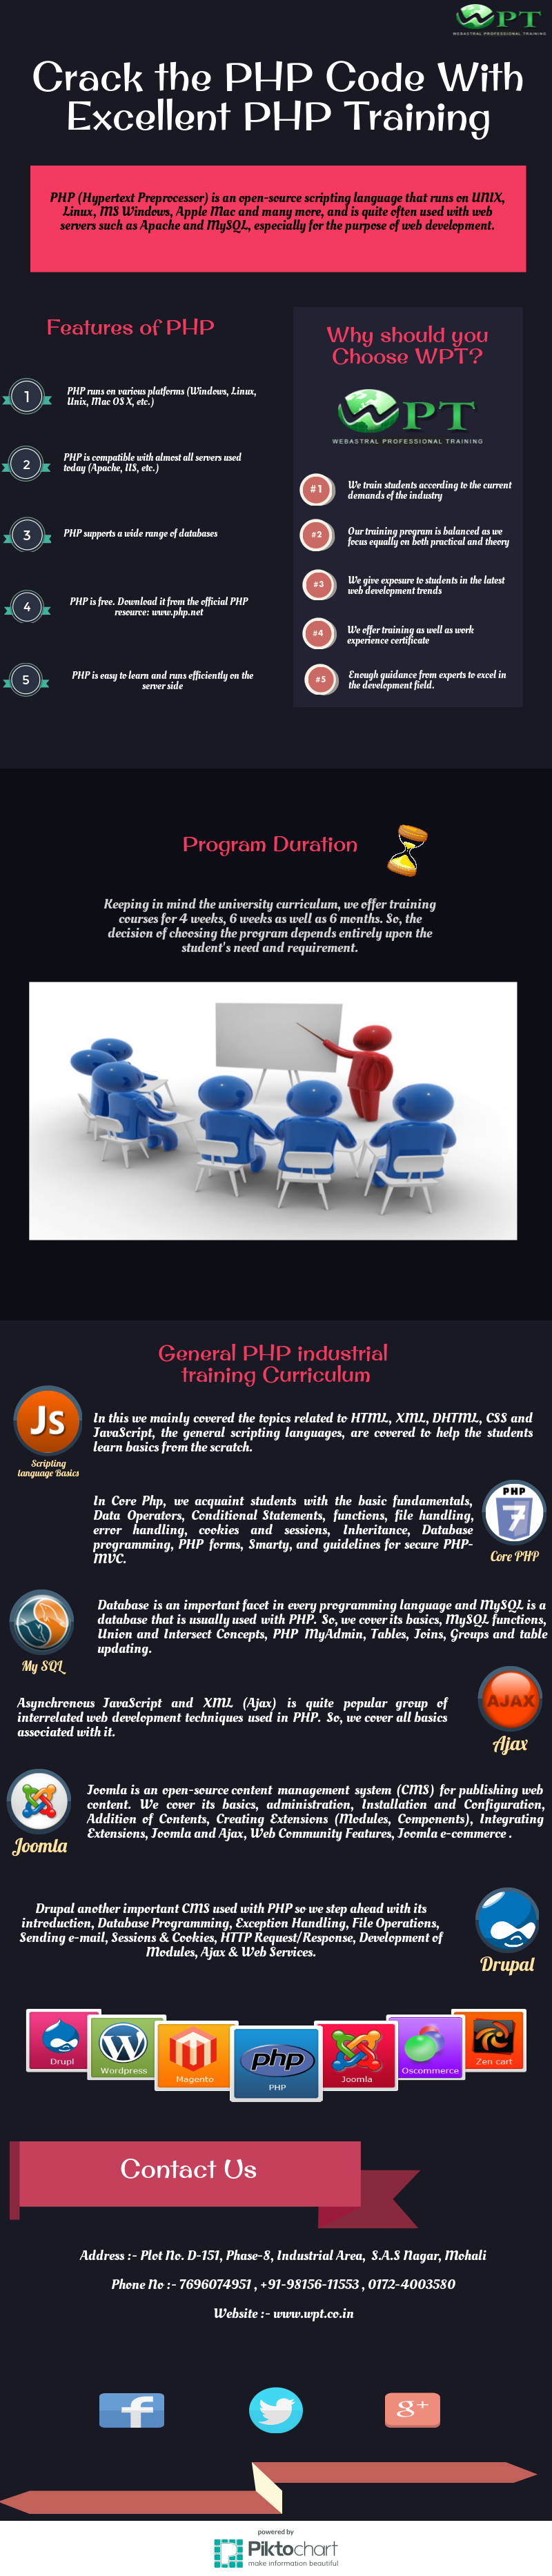 Are you interested in PHP? But the lack of training may make you to face the difficulties of competitive business. Get PHP Industrial Training in Mohali & Chandigarh at WPT